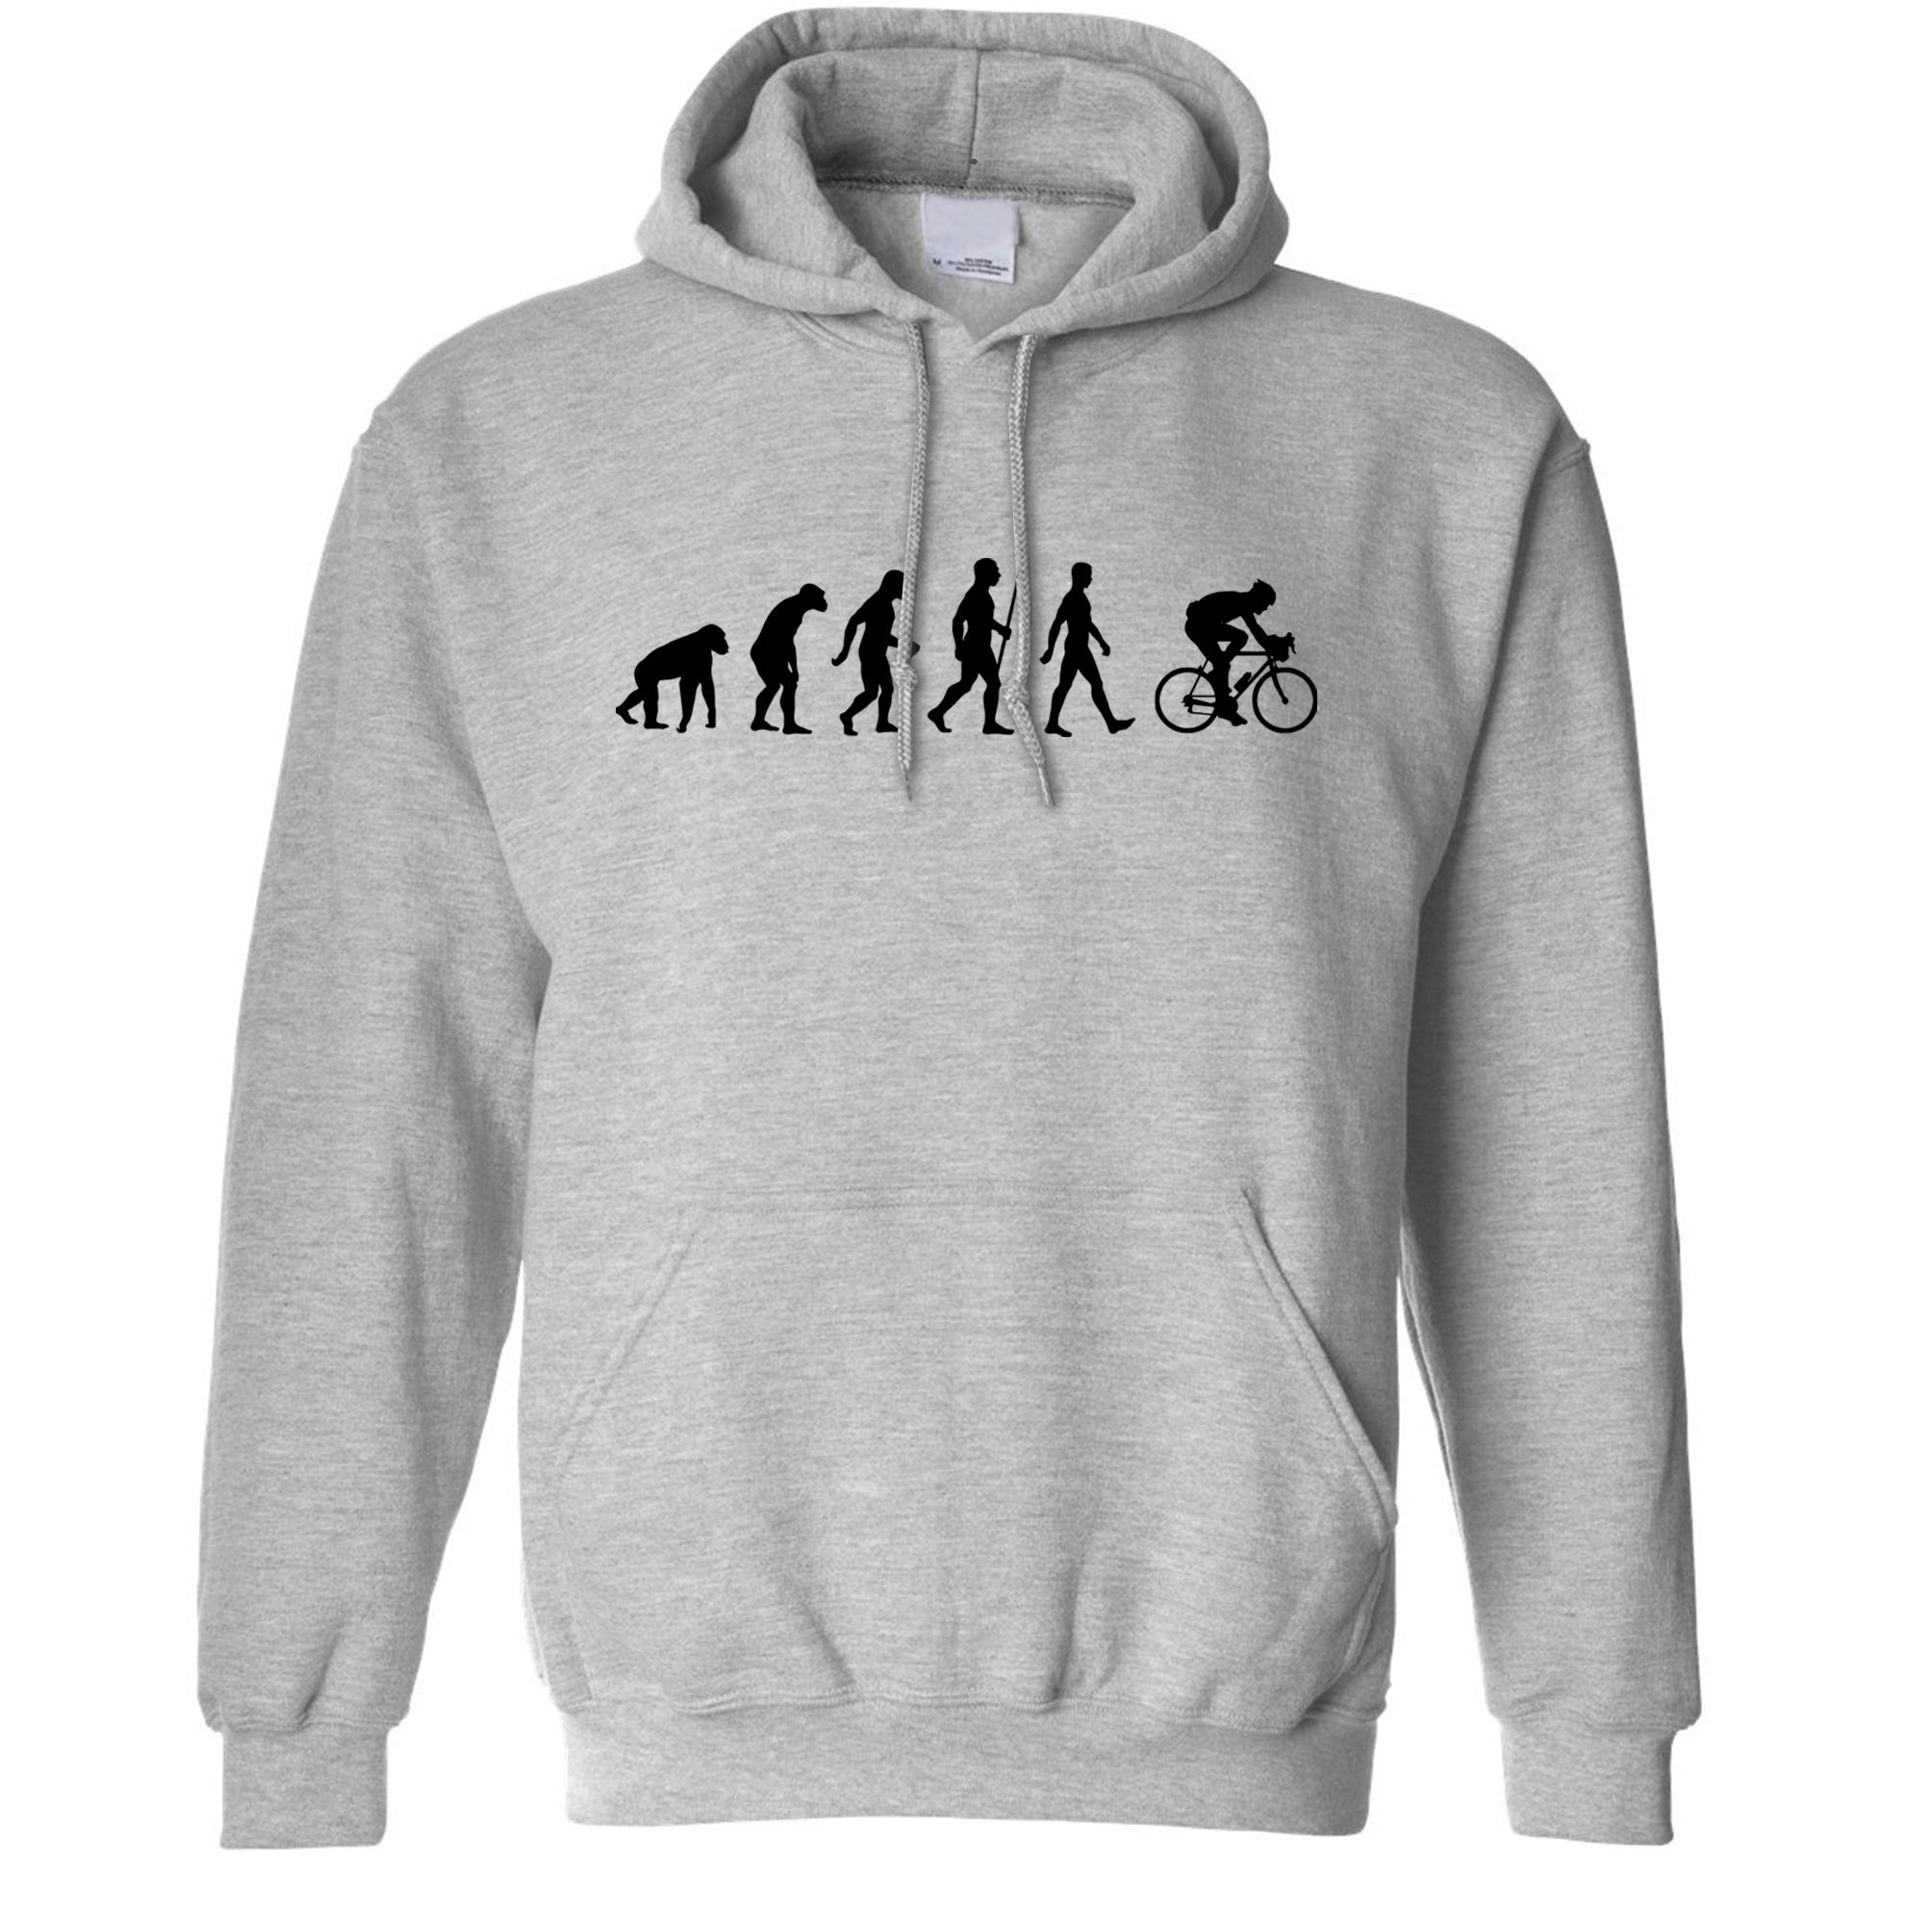 Novelty Hoodie The Evolution of Cycling Hooded Jumper